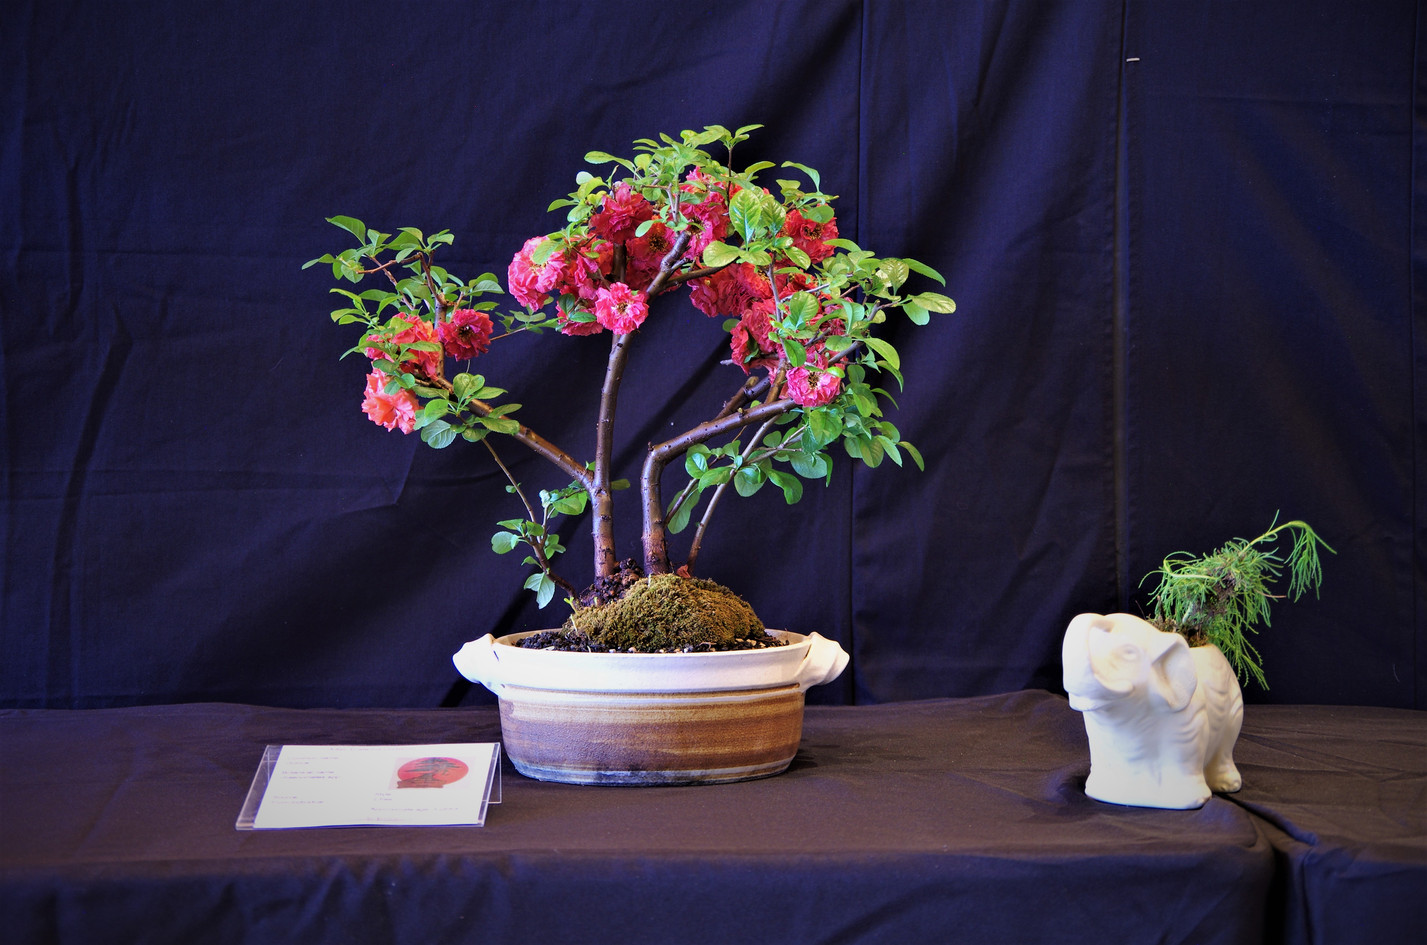 Quince, Chaenomeles japonica, 2 trees, 4